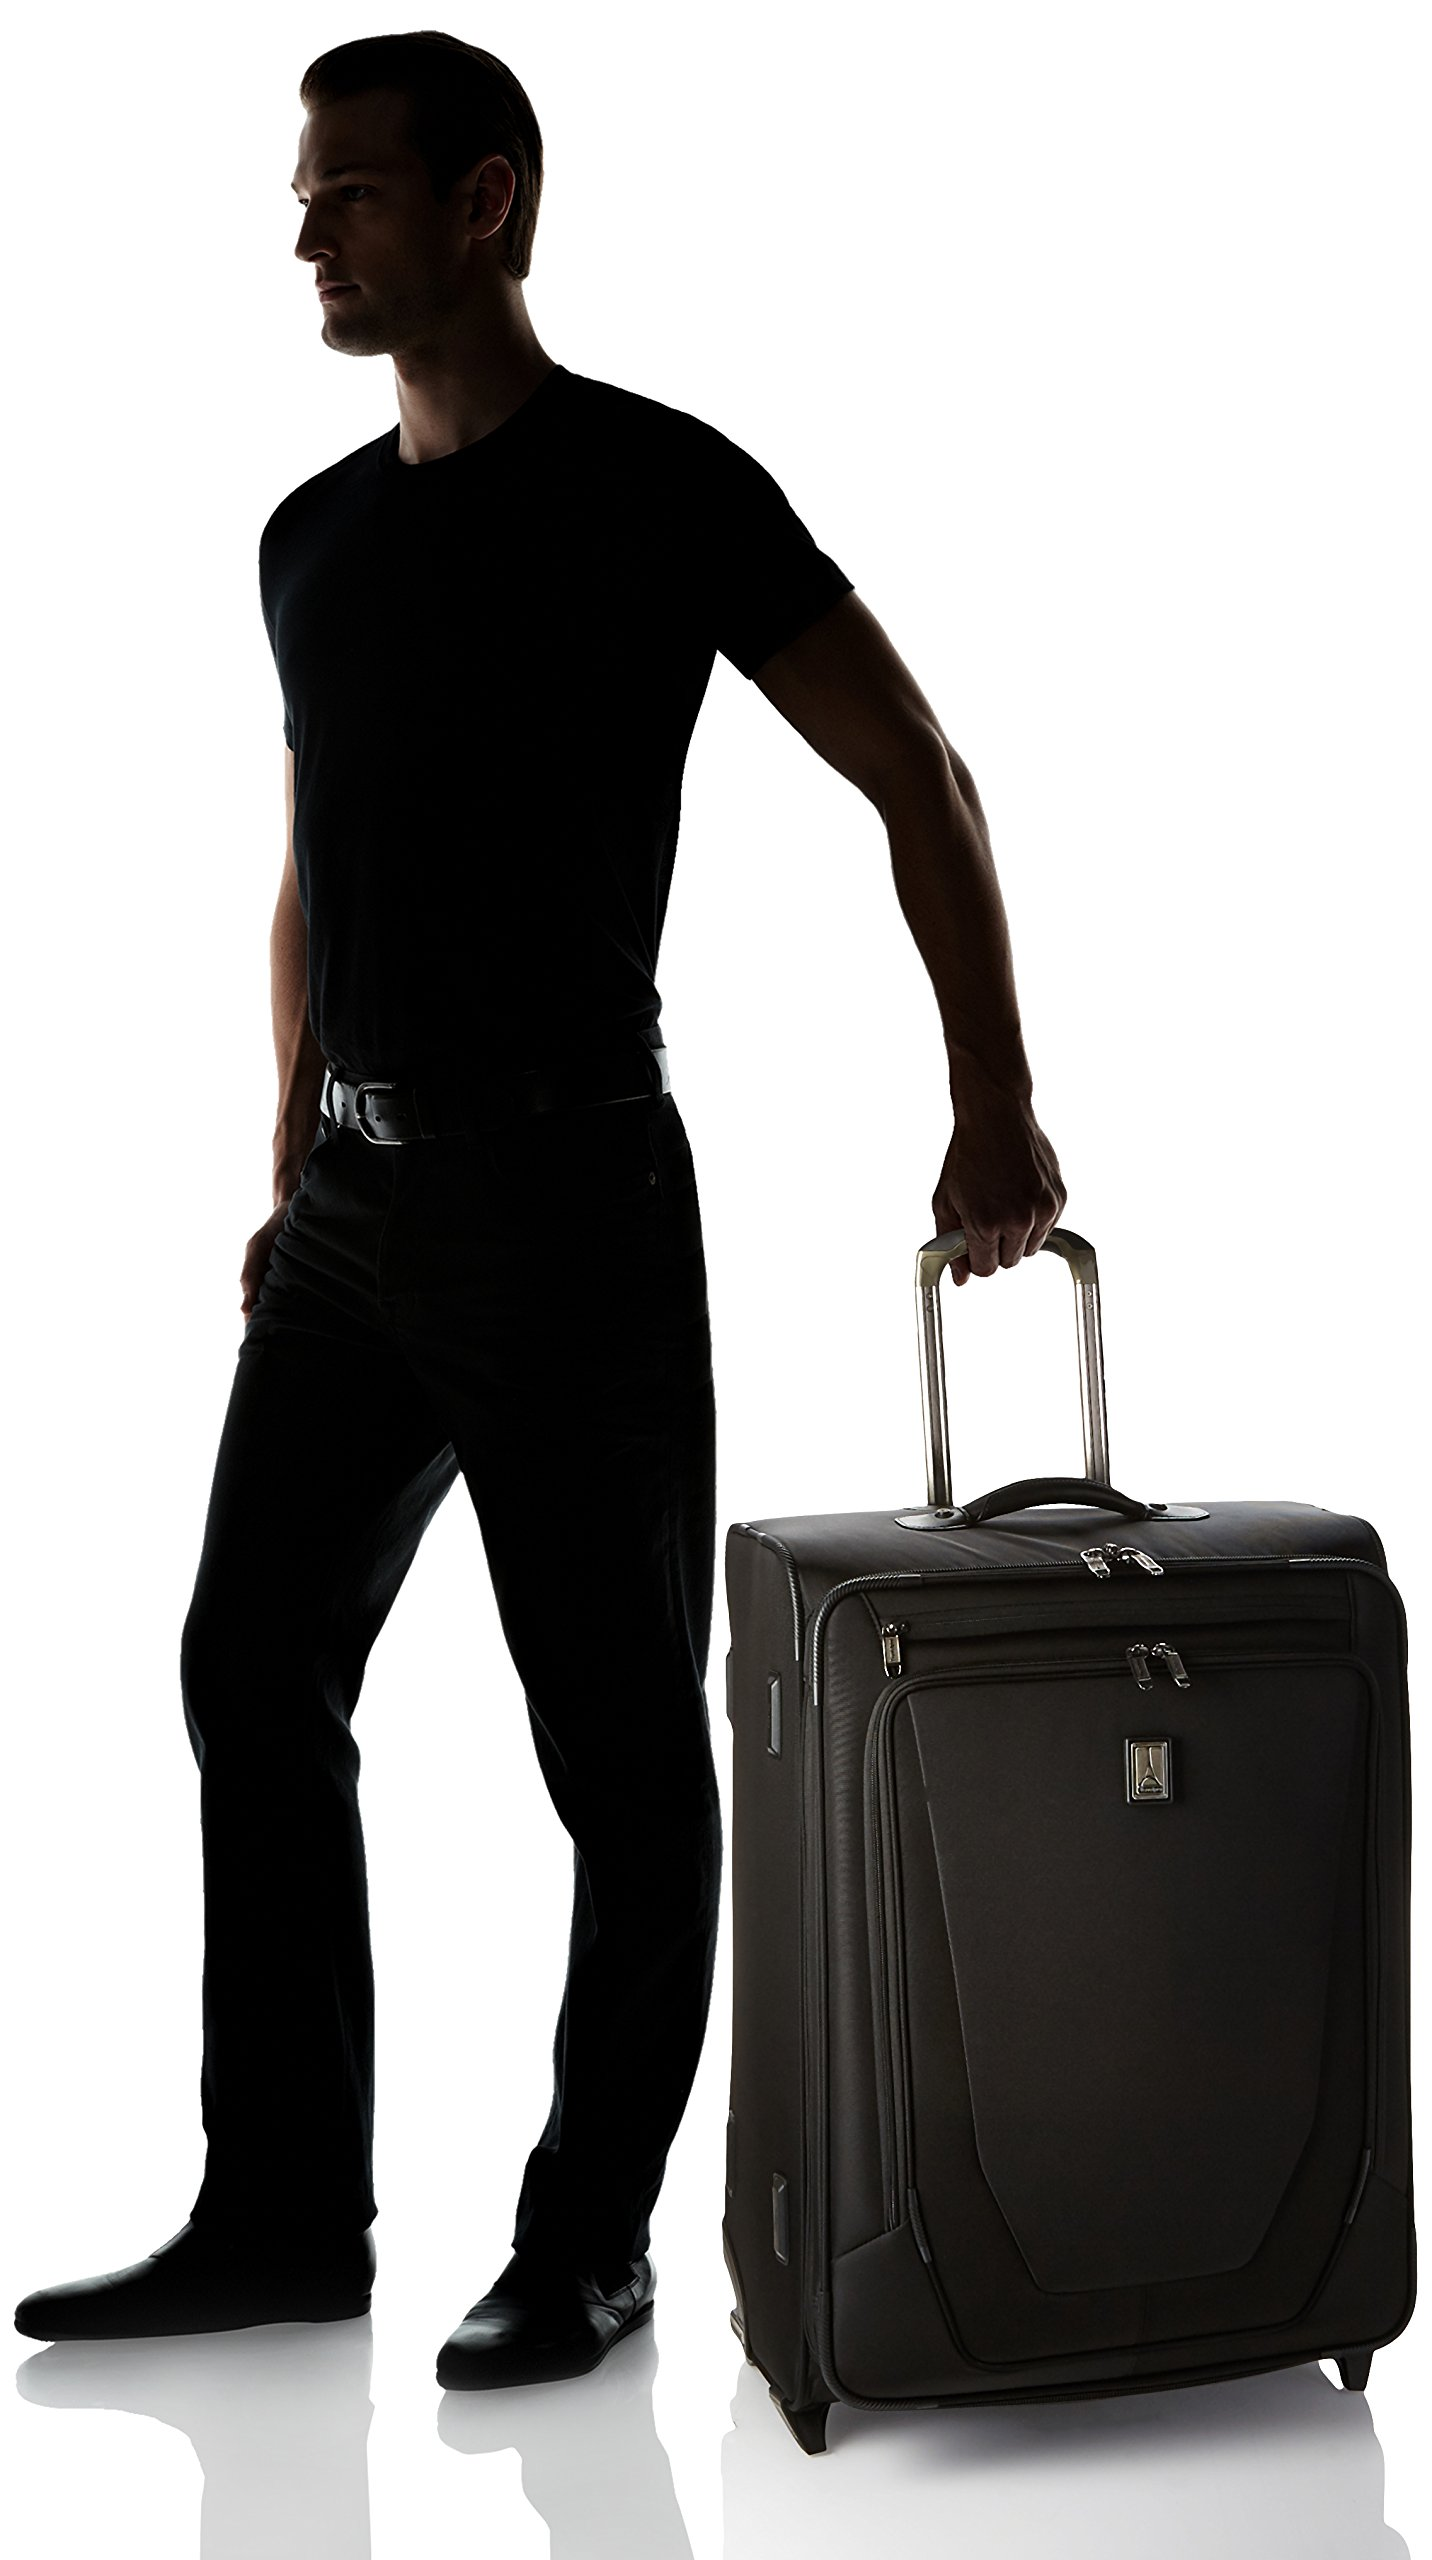 Travelpro Crew 11 Expandable Rollaboard Wheeled Suiter Suitcase, Black by Travelpro (Image #5)